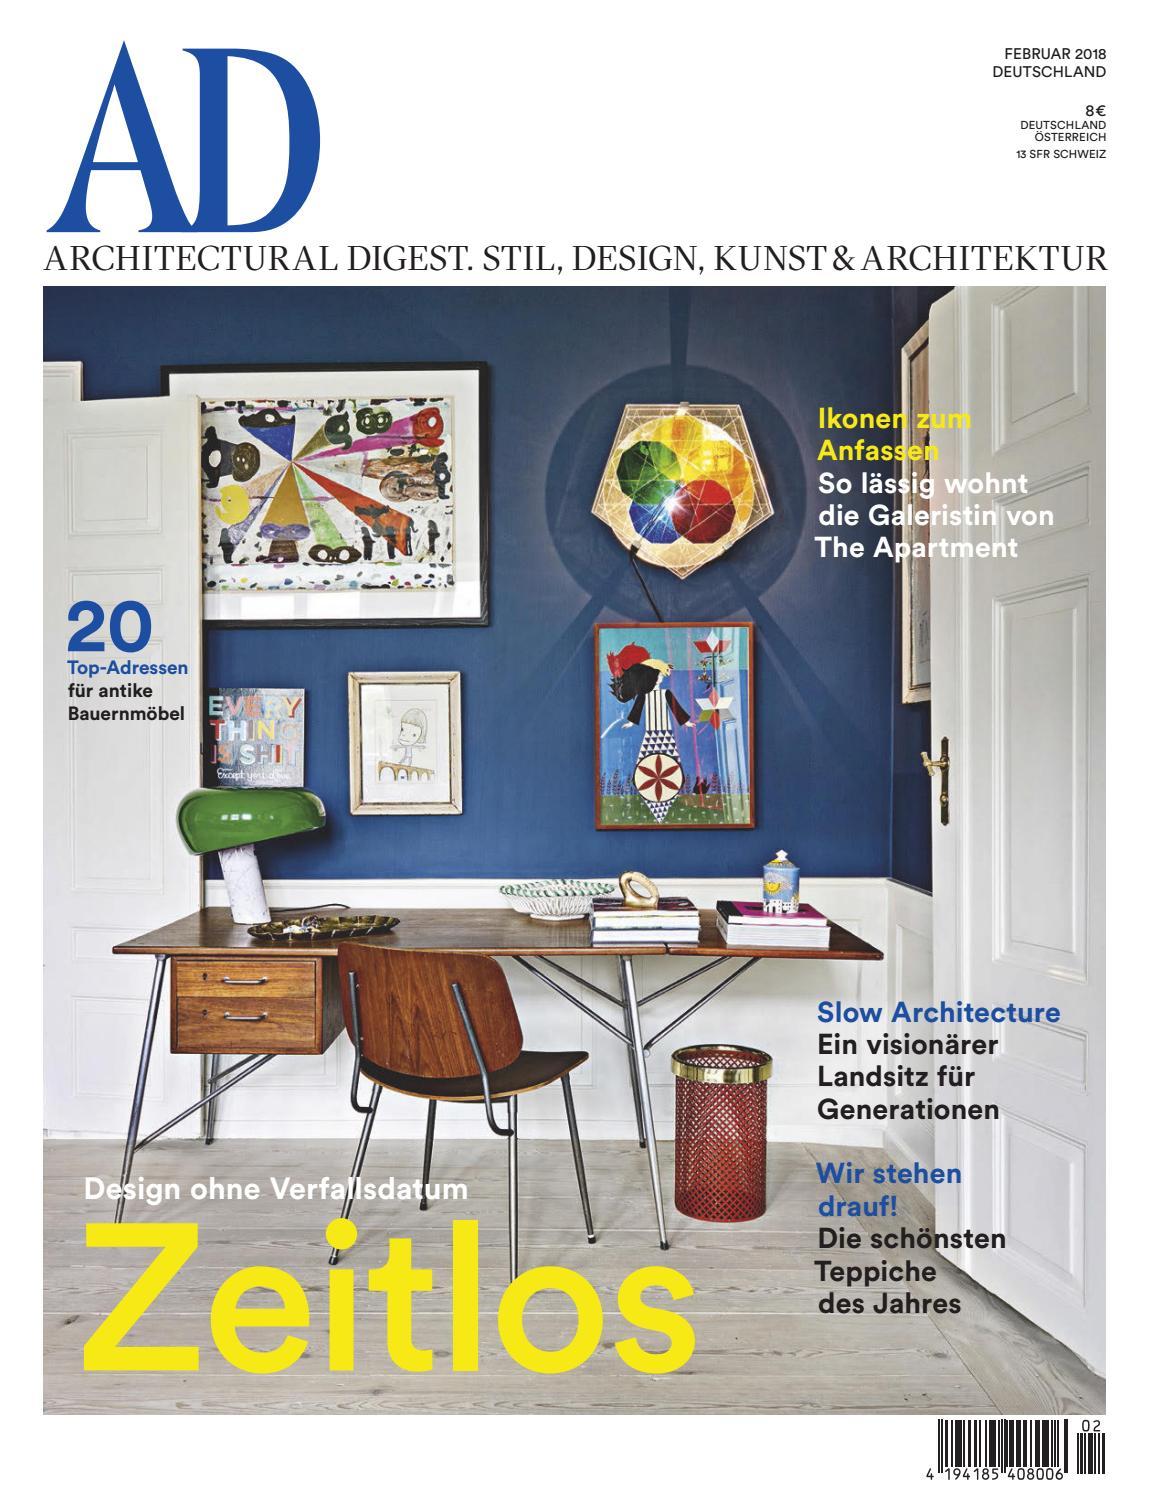 AD 02/2018 by AD Architectural Digest - issuu